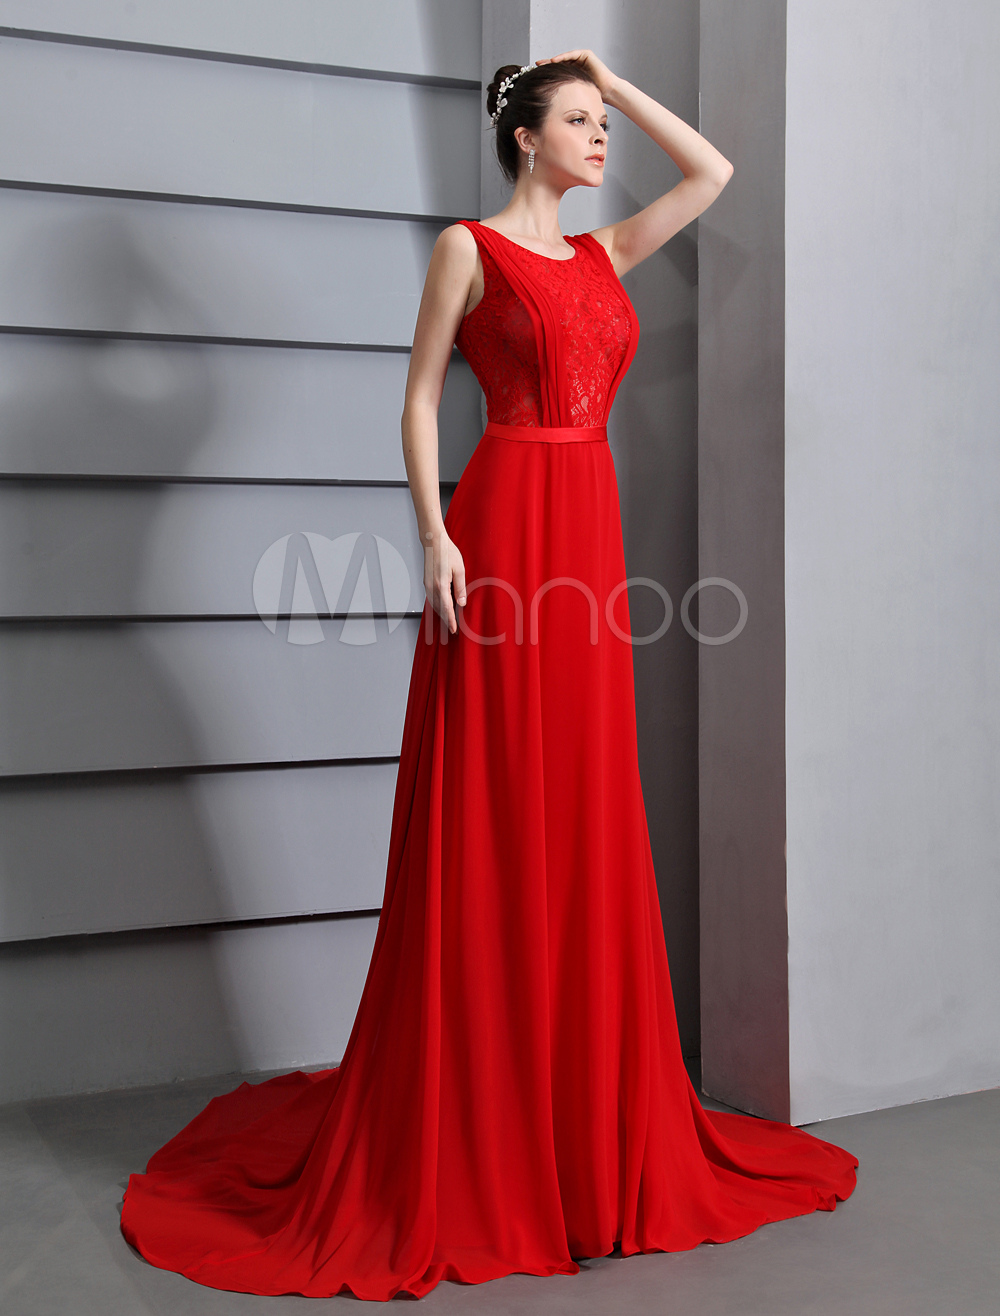 Red Prom Dresses 2017 Long Backless Evening Dress Lace Insert ...